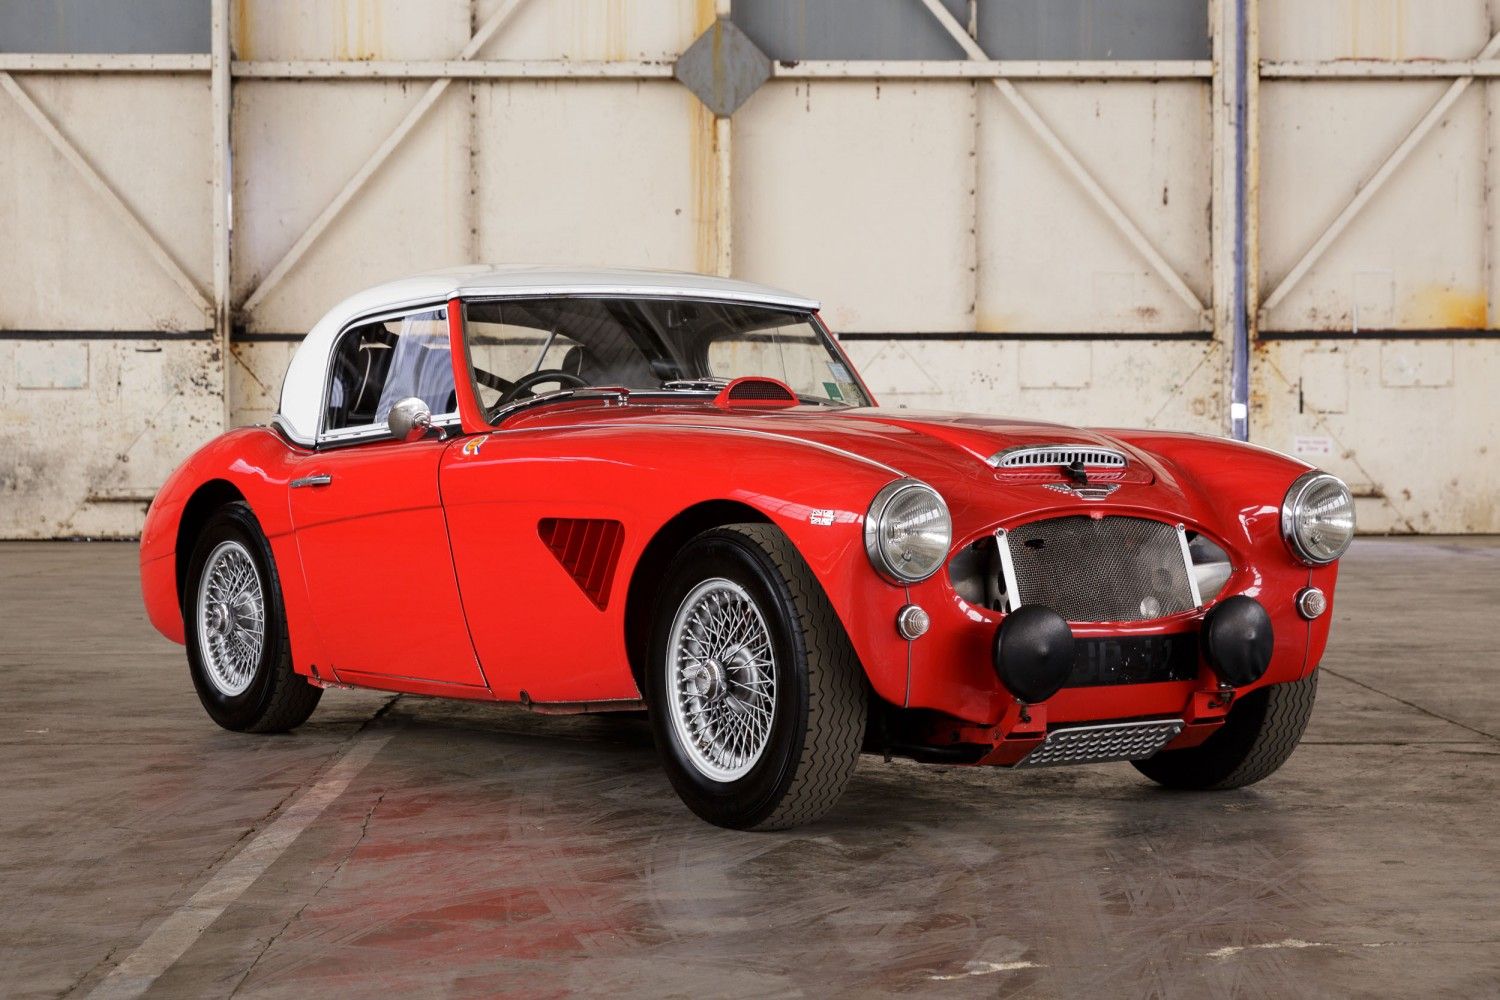 1961 Austin Healey 3000 Rally Car      Pendine Historic Cars The